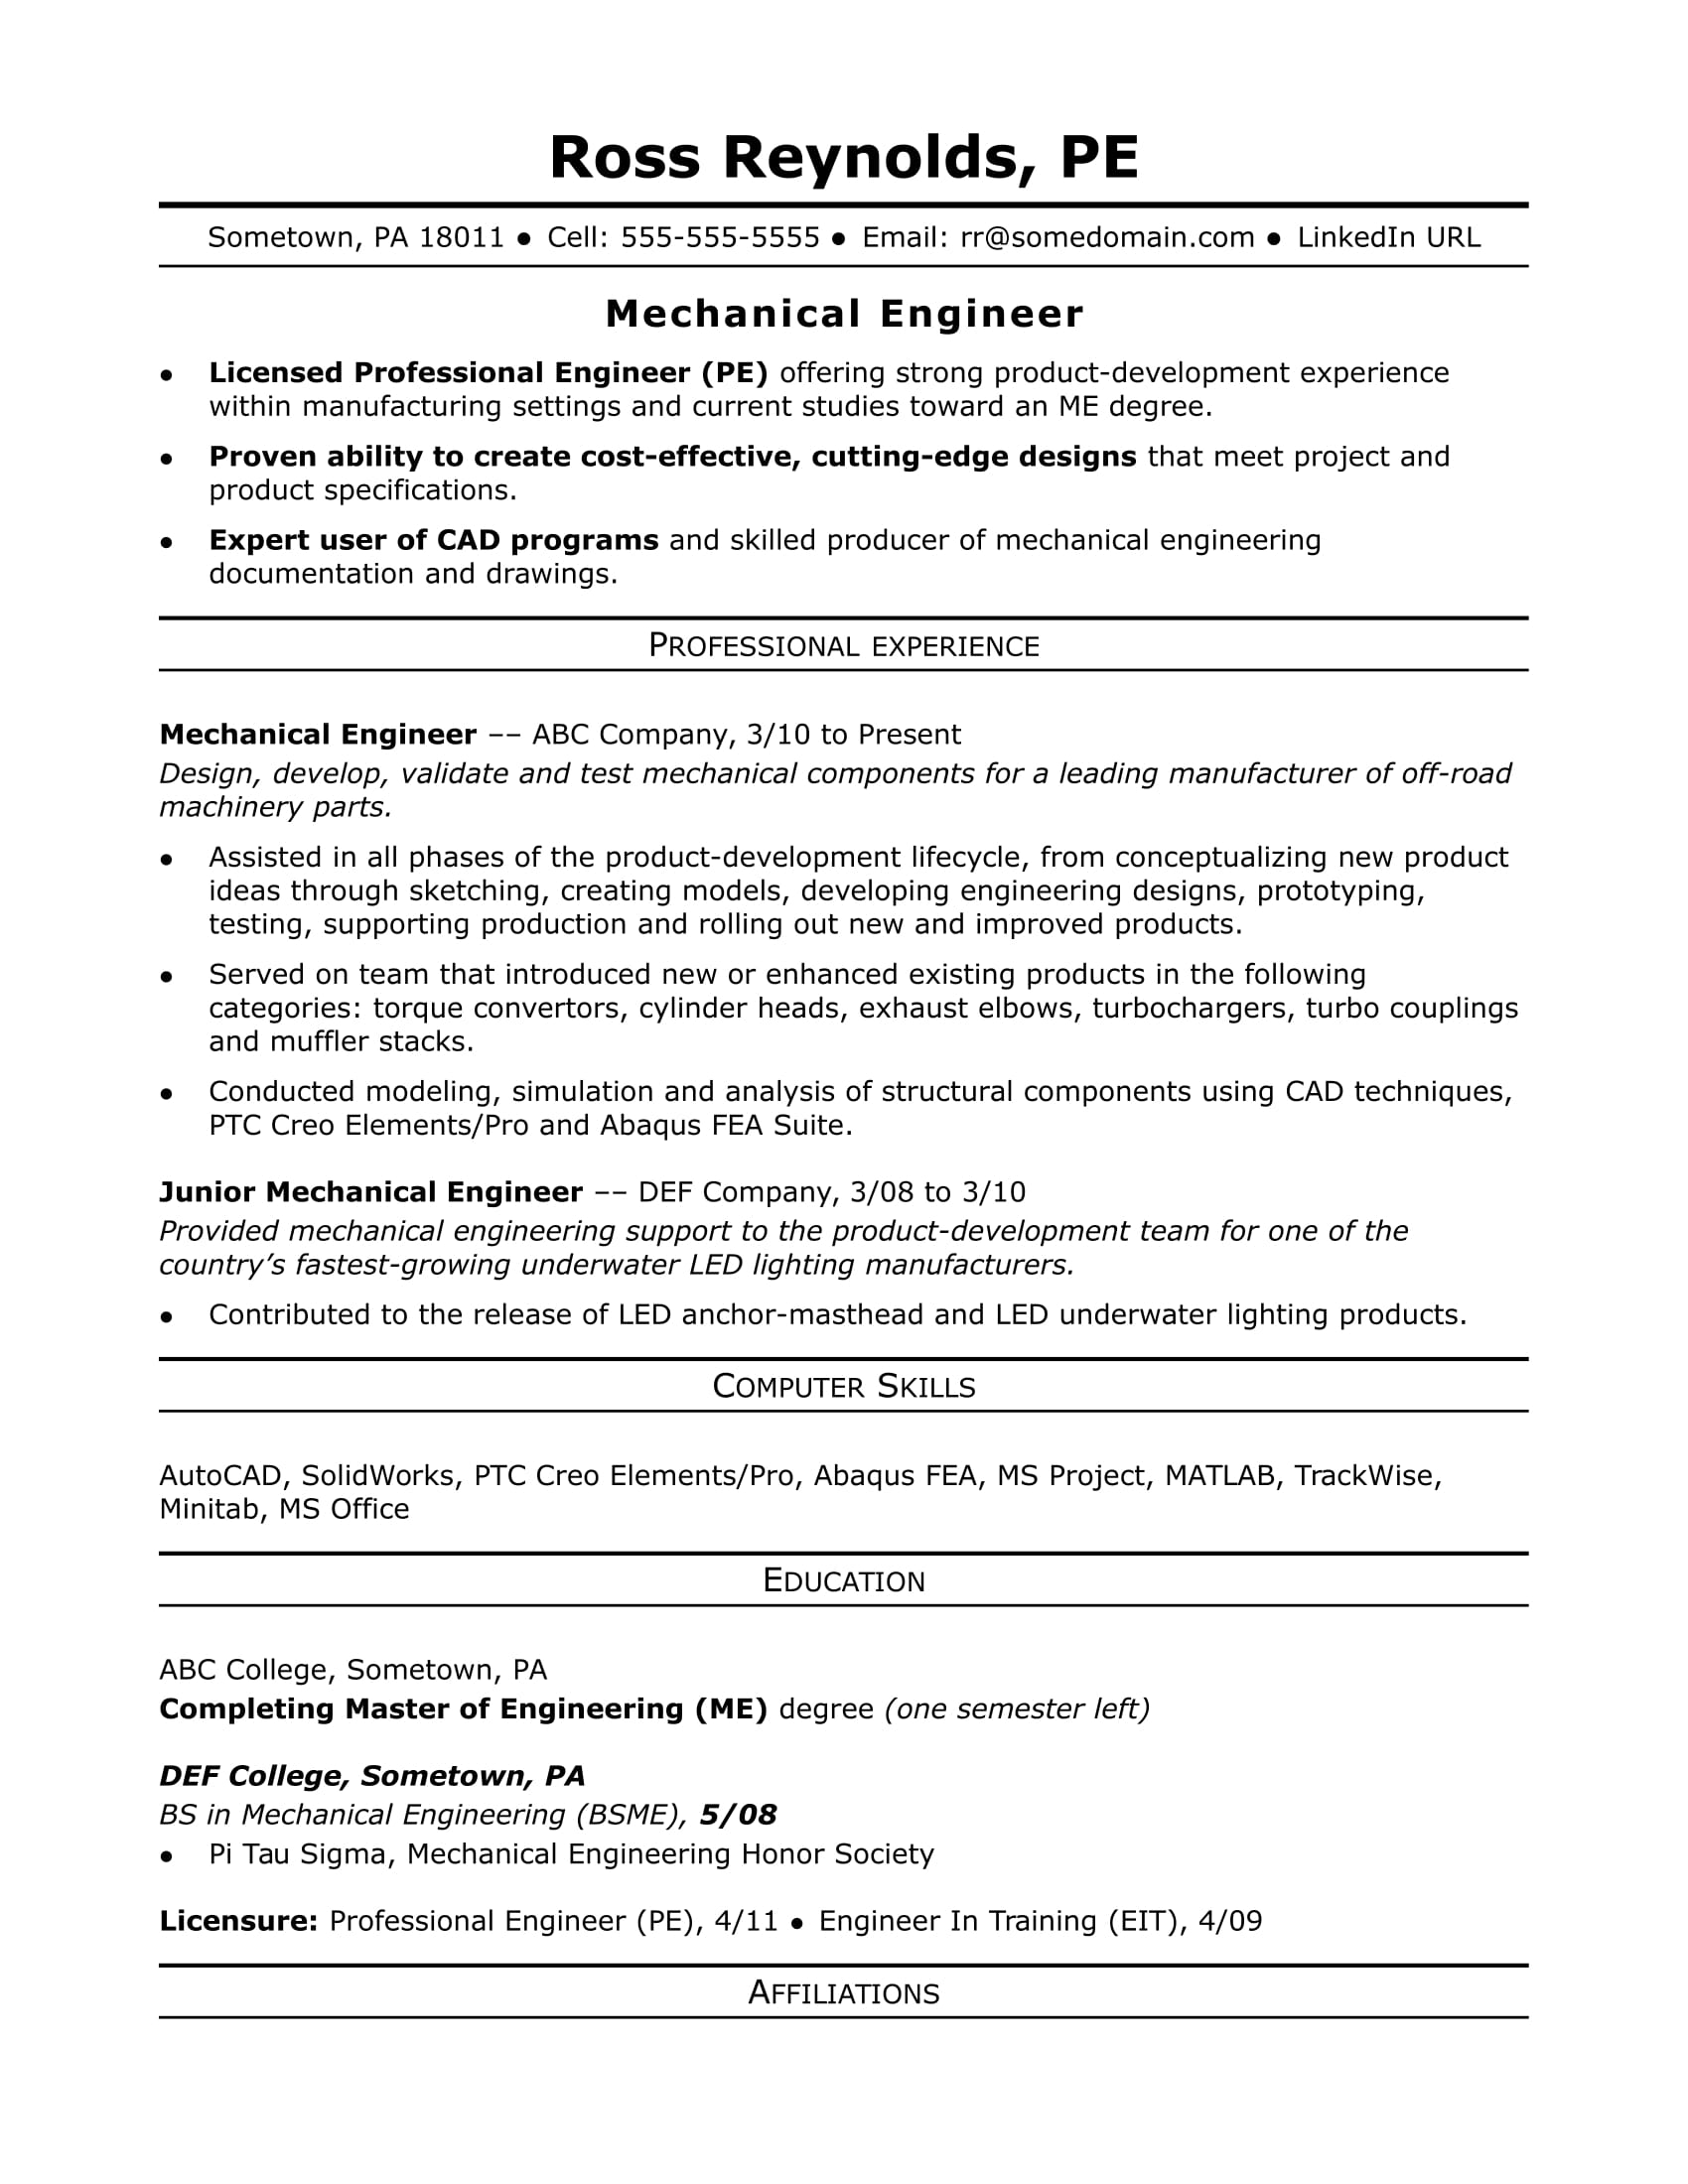 Sample Resume For A Midlevel Mechanical Engineer  Engineering Resume Template